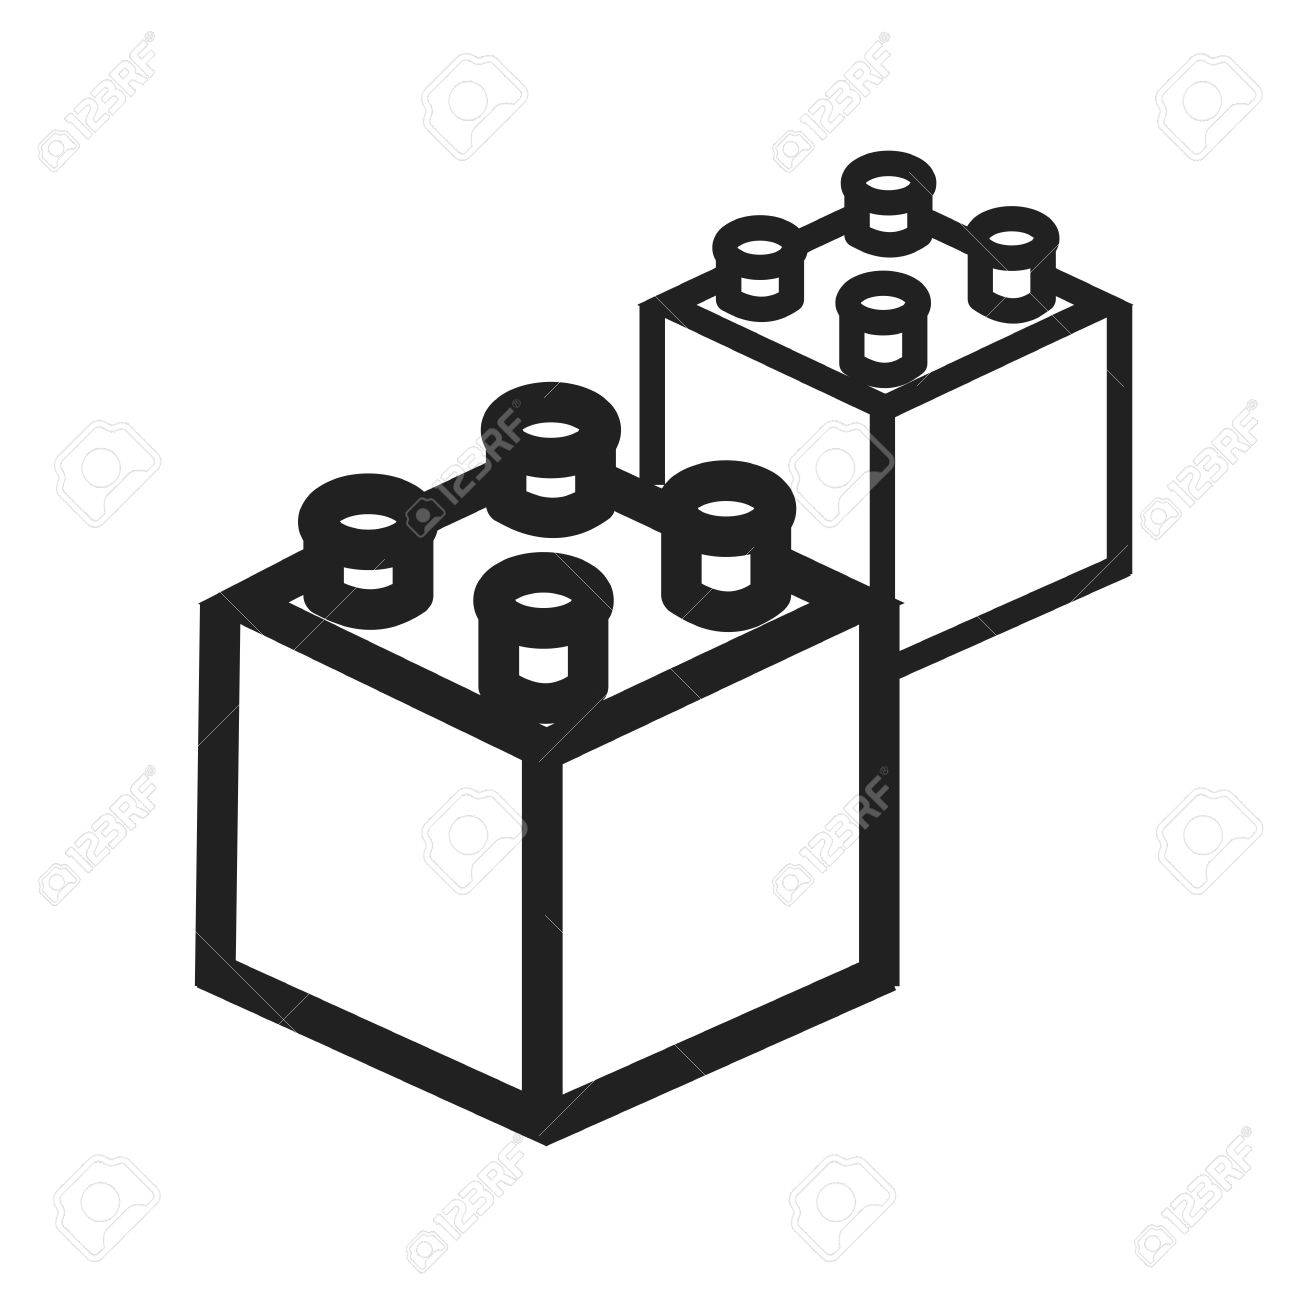 1300x1300 Blocks, Toy, Building Icon Vector Image.can Also Be Used